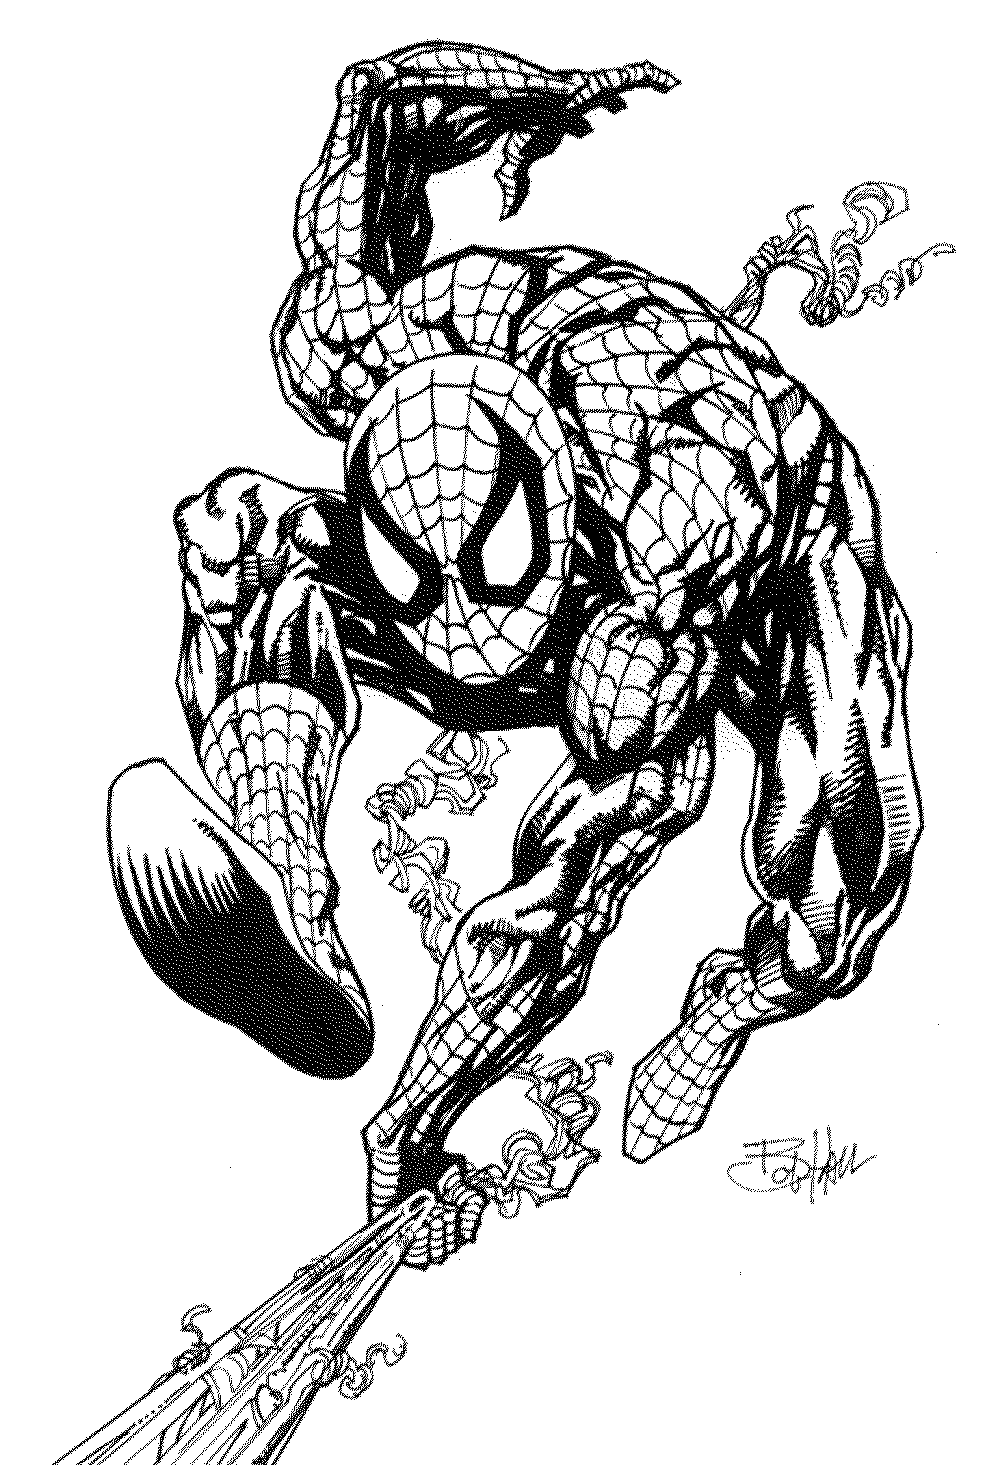 coloring sheet spiderman coloring pages spiderman free to color for children spiderman kids sheet spiderman coloring pages coloring